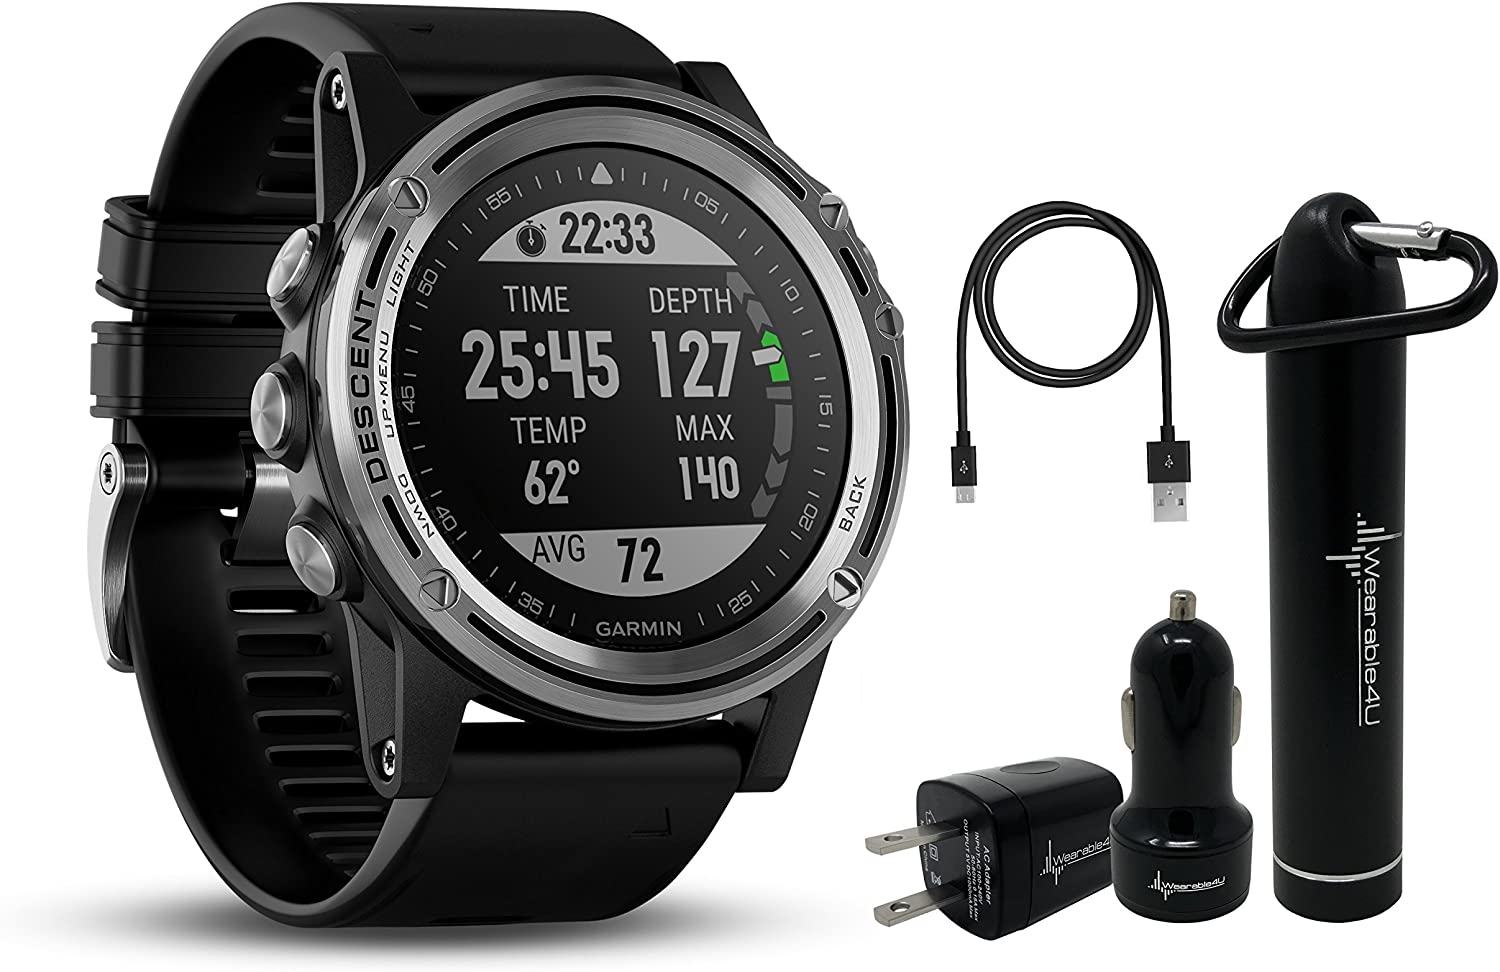 Garmin Descent MK1 Versatile Dive Computer with Surface GPS and Multisport Features and Wearable4U Ultimate Power Pack Bundle Silver Sapphire with Black Band